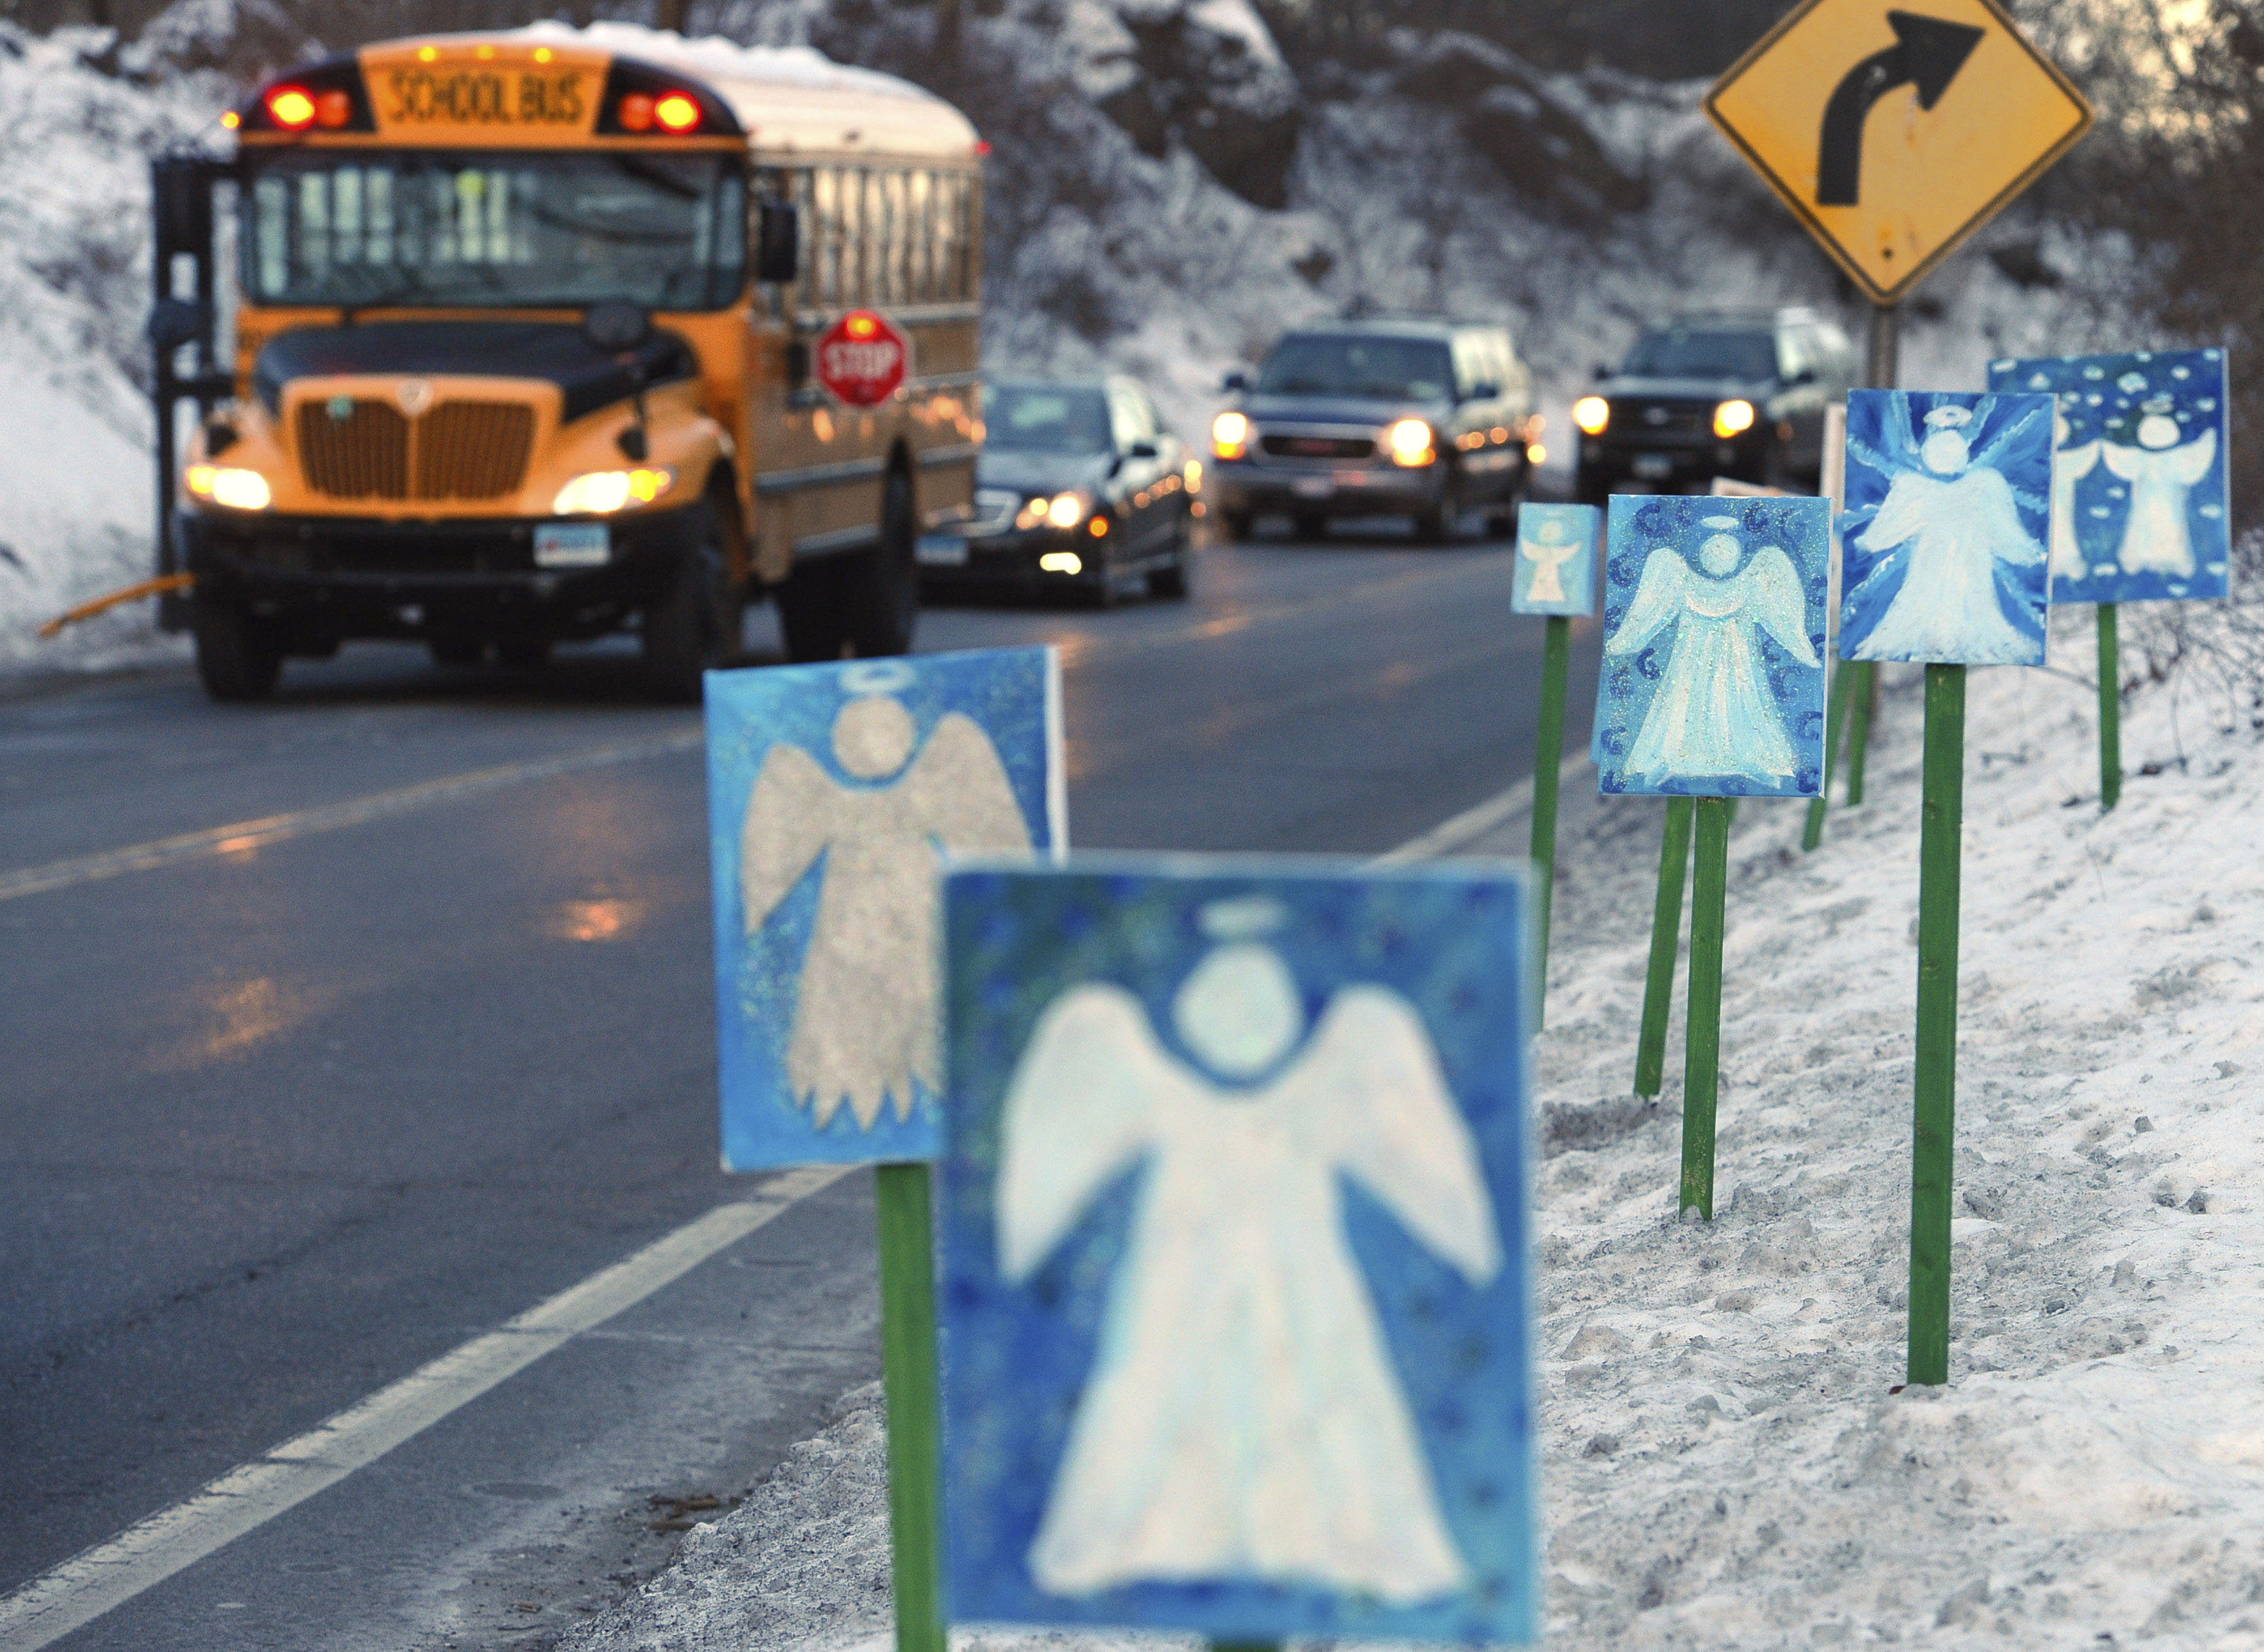 A bus traveling from Newtown, Conn., to Monroe stops near 26 angel signs posted along the roadside in Monroe, Conn., on Jan. 3, 2013, the first day of classes for Sandy Hook Elementary School students since the Dec. 14, 2012, shooting.